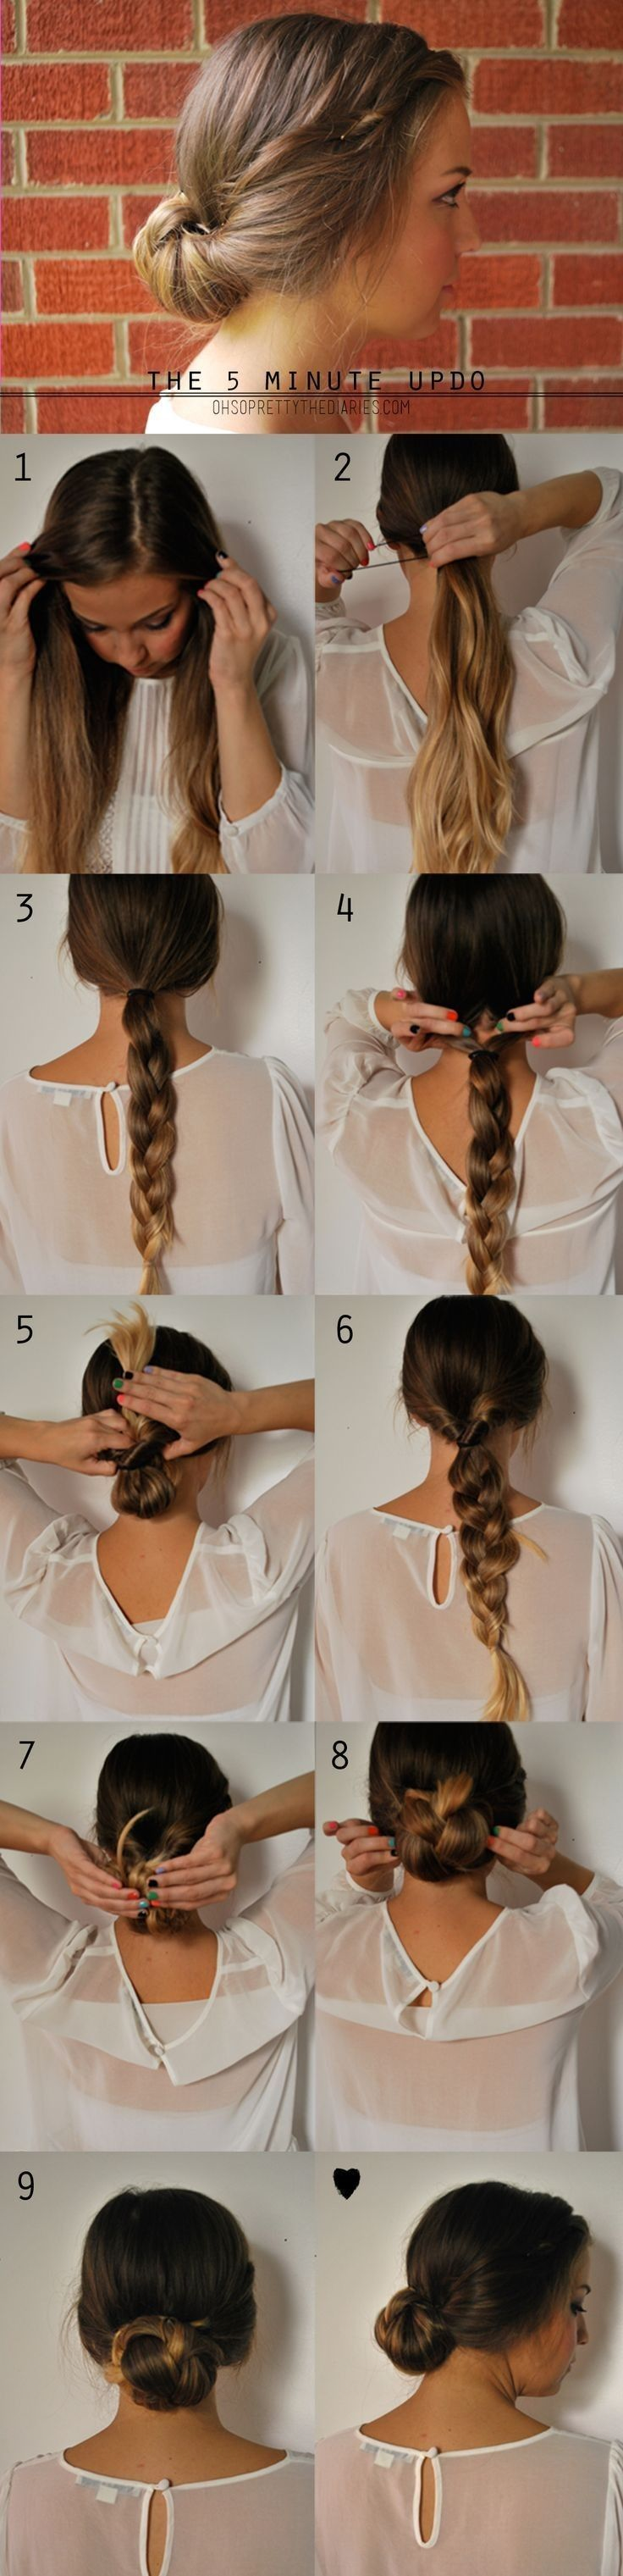 15 Cute Hairstyles Step By Step Hairstyles For Long Hair Popular Haircuts Hair Styles Long Hair Styles Hair